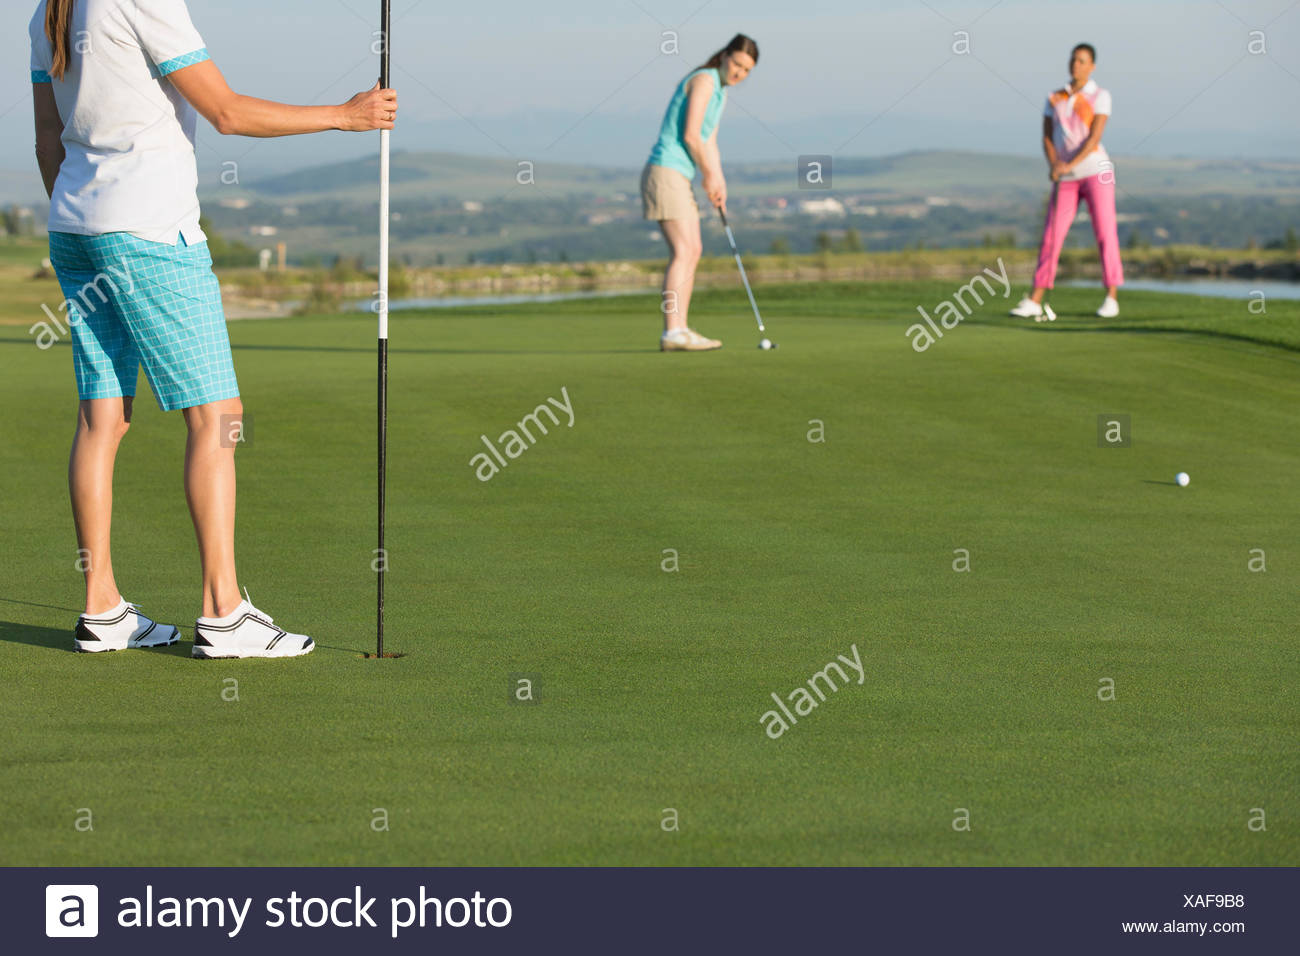 female golfer putting on golf green - Stock Image